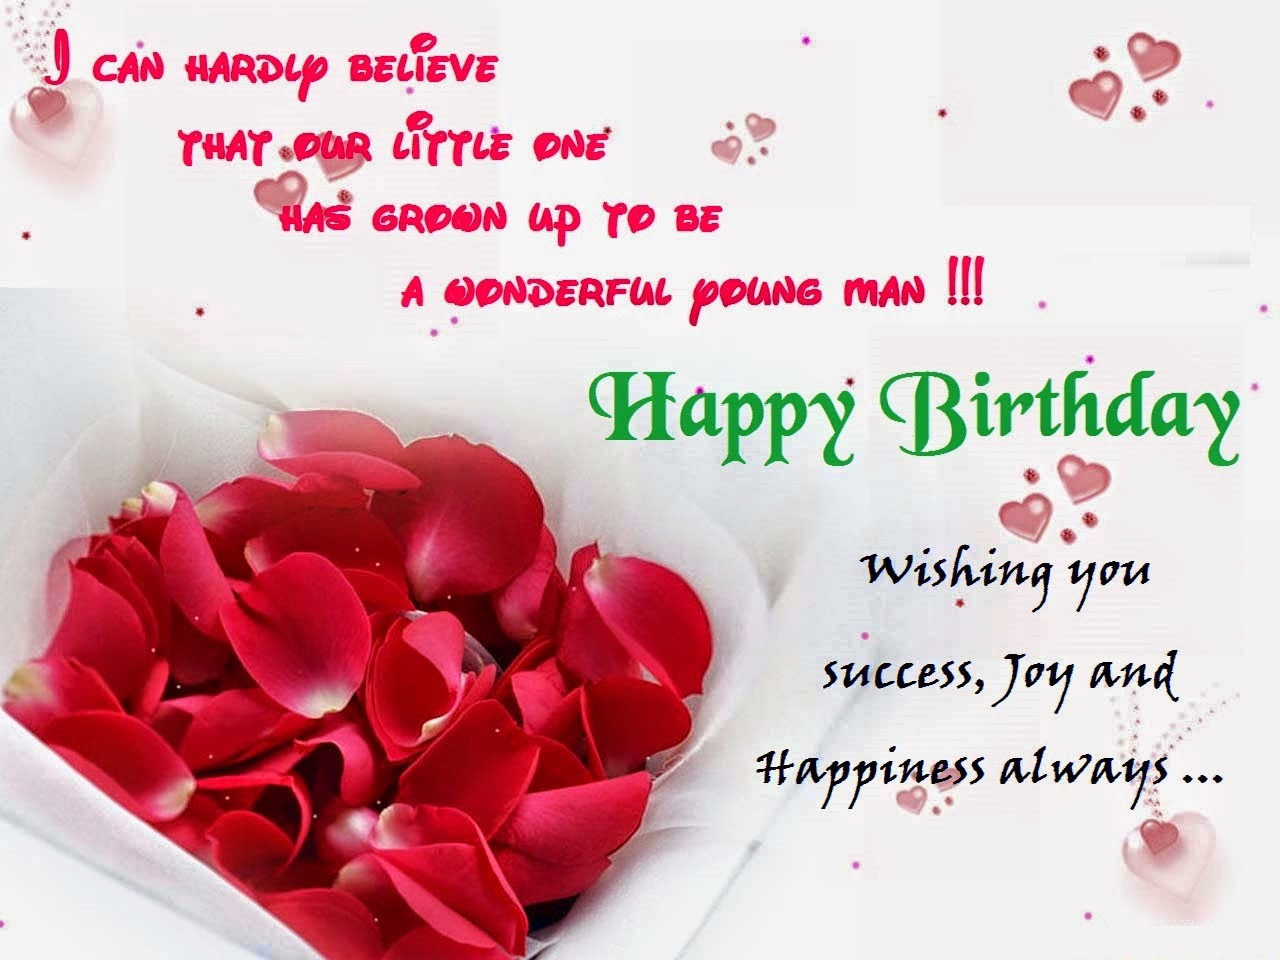 Happy birthday wishes saying quotes for someone or special happy birthday wishes saying quotes for someone or special friend thecheapjerseys Choice Image